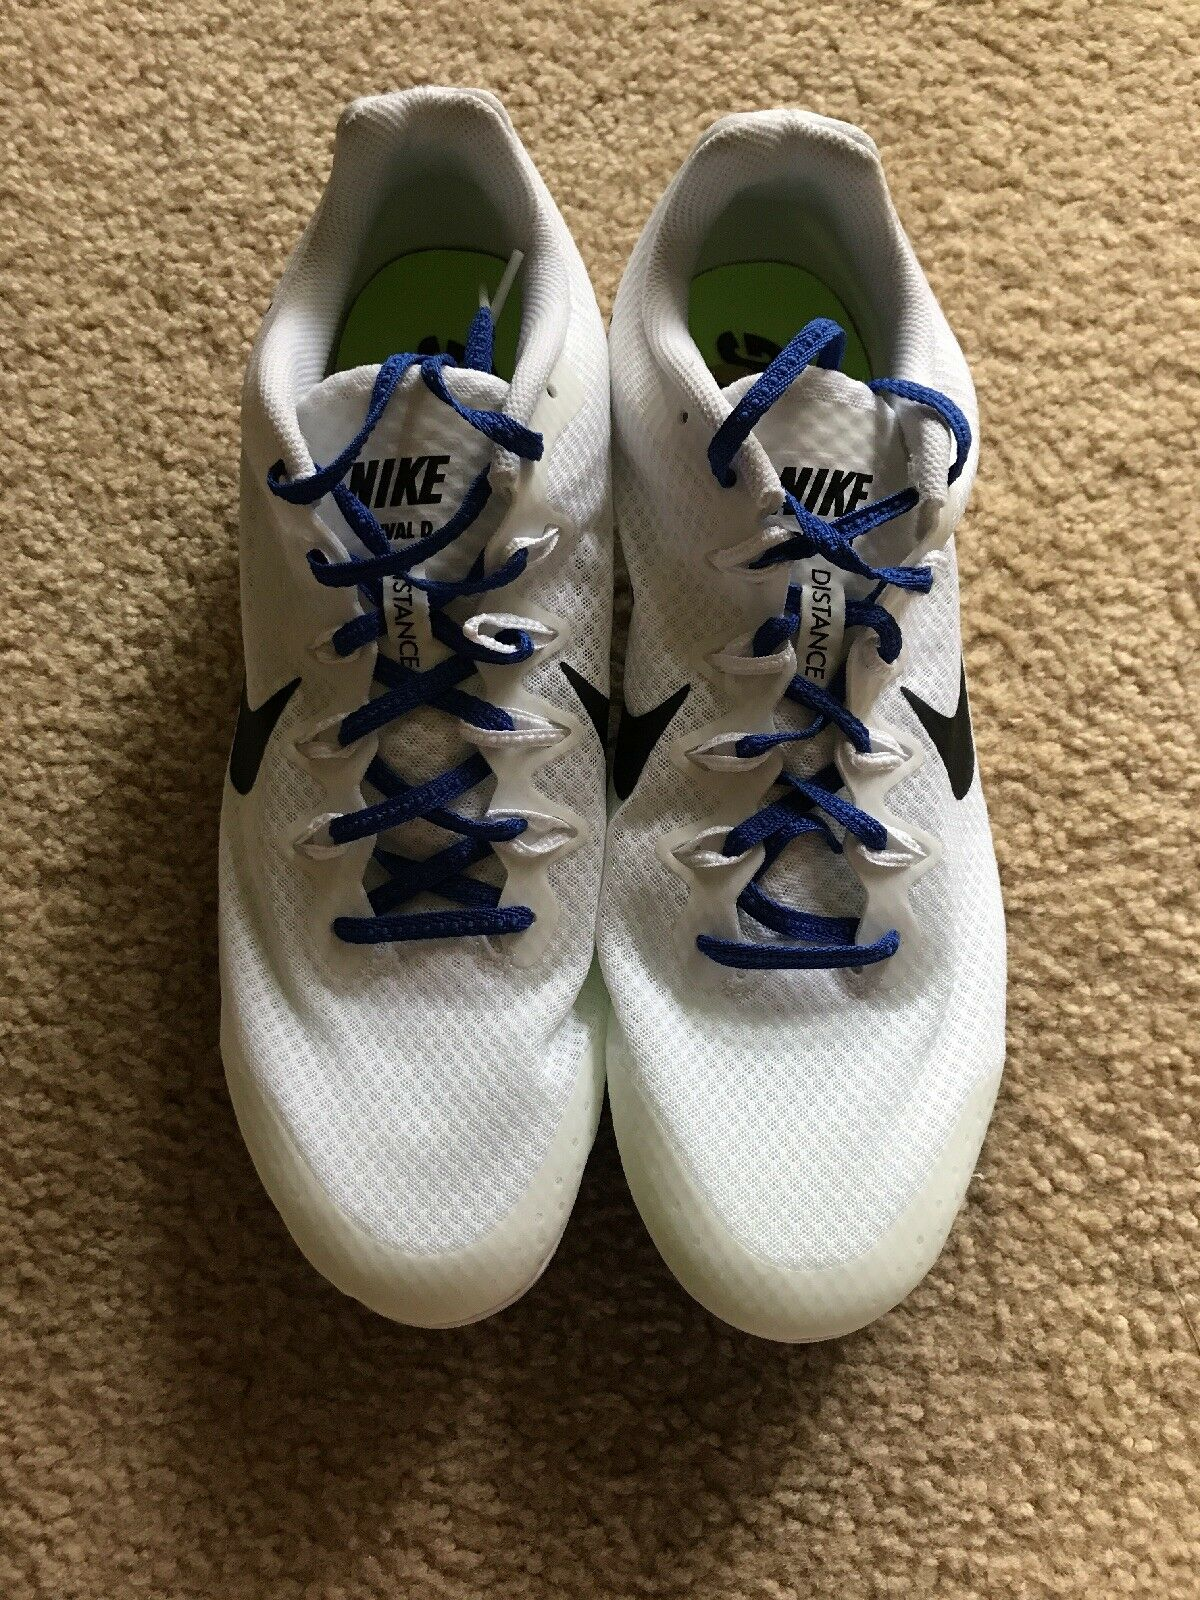 Brand discount New Nike Zoom Rival D 9 Mens Track & Field Spikes Distance Running Shoes White.